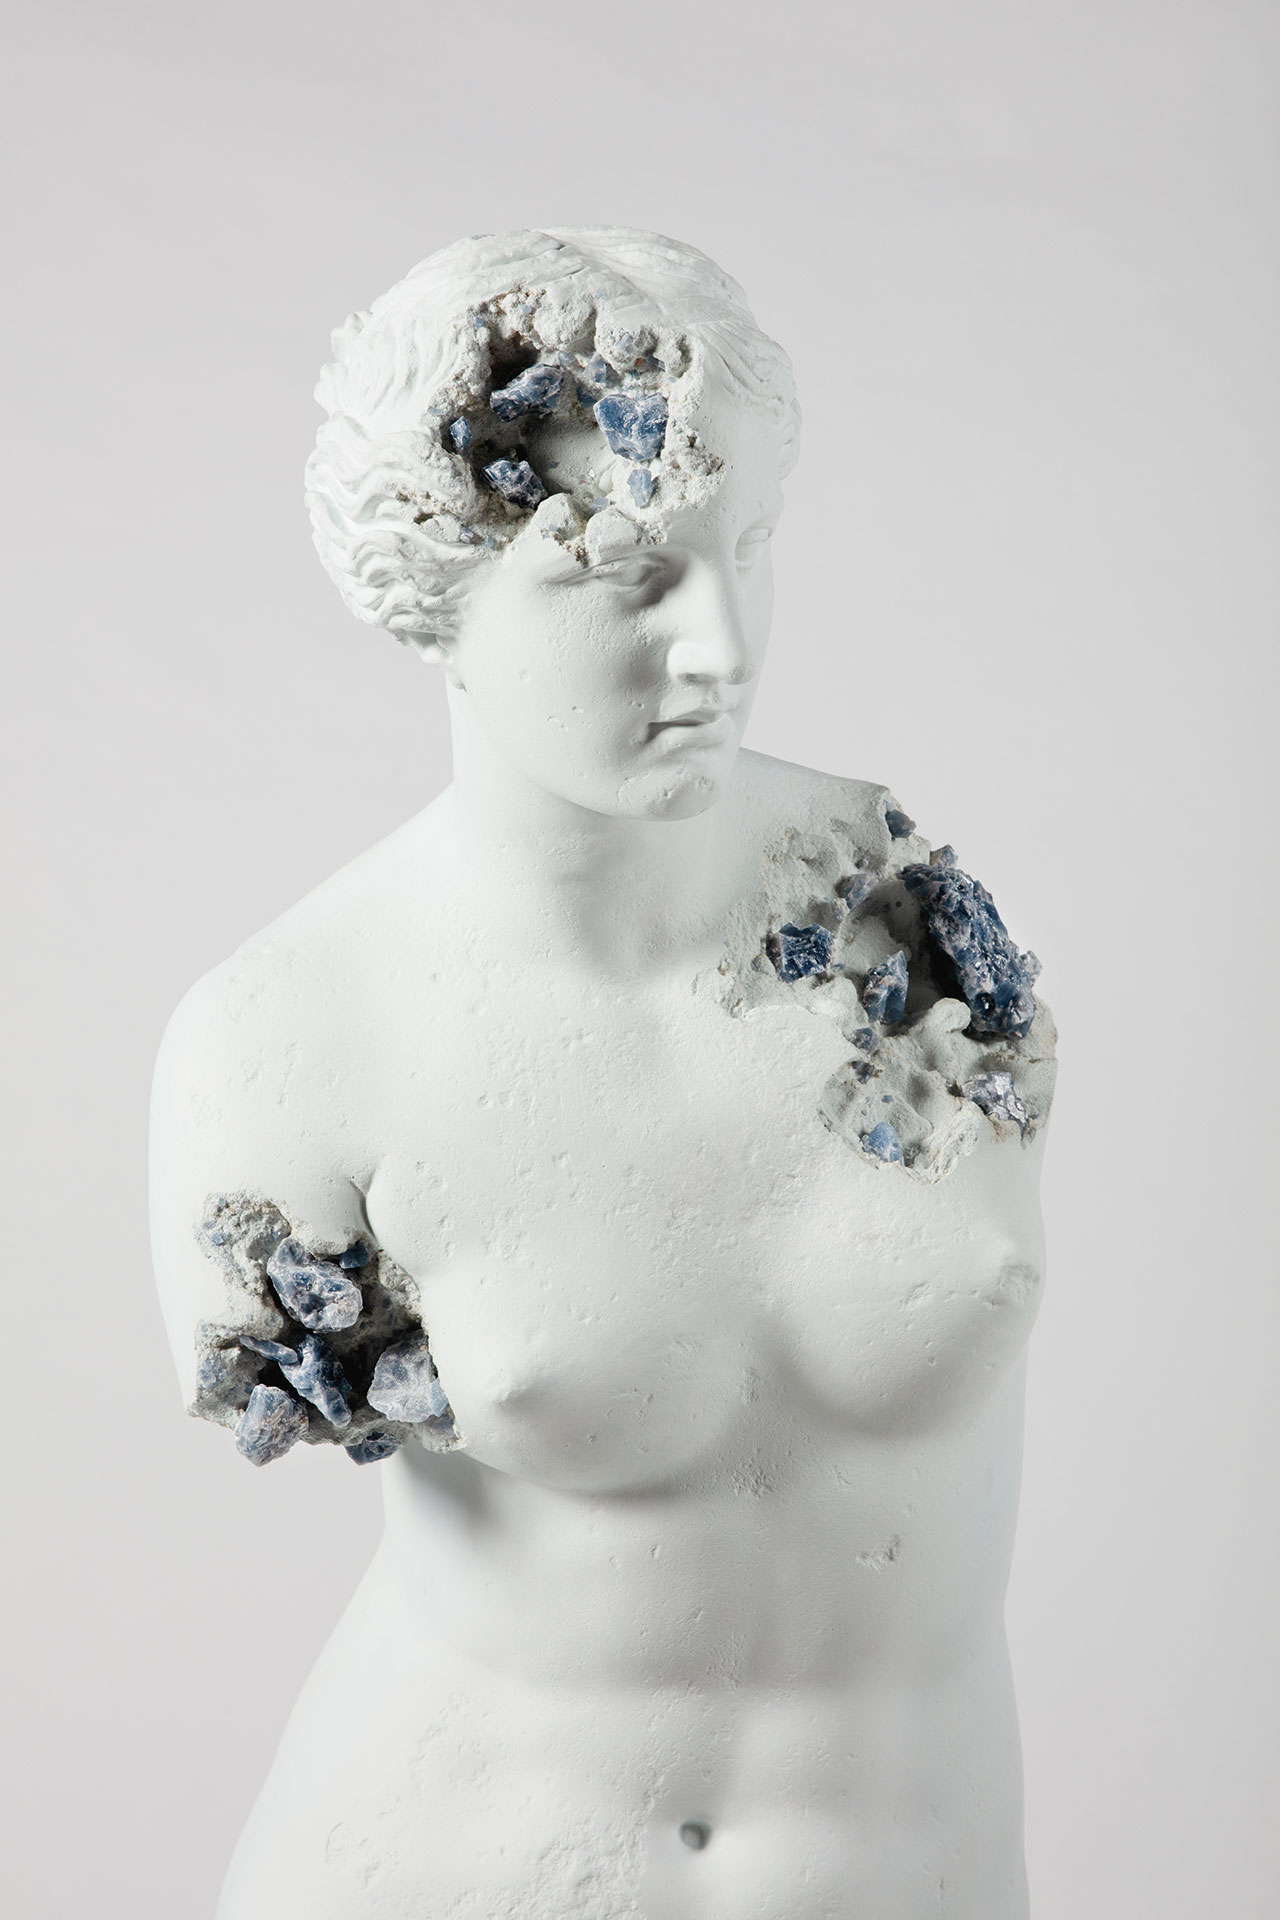 Daniel Arsham, Blue Calcite Eroded Venus of Milo, (details) 2019. Blue calcite, hydrostone. 216 x 60 x 65 cm | 85 1/16 x 23 5/8 x 25 9/16 inch, 150.00 kg. Photo by Guillaume Ziccarelli. © Courtesy the artist & Perrotin.